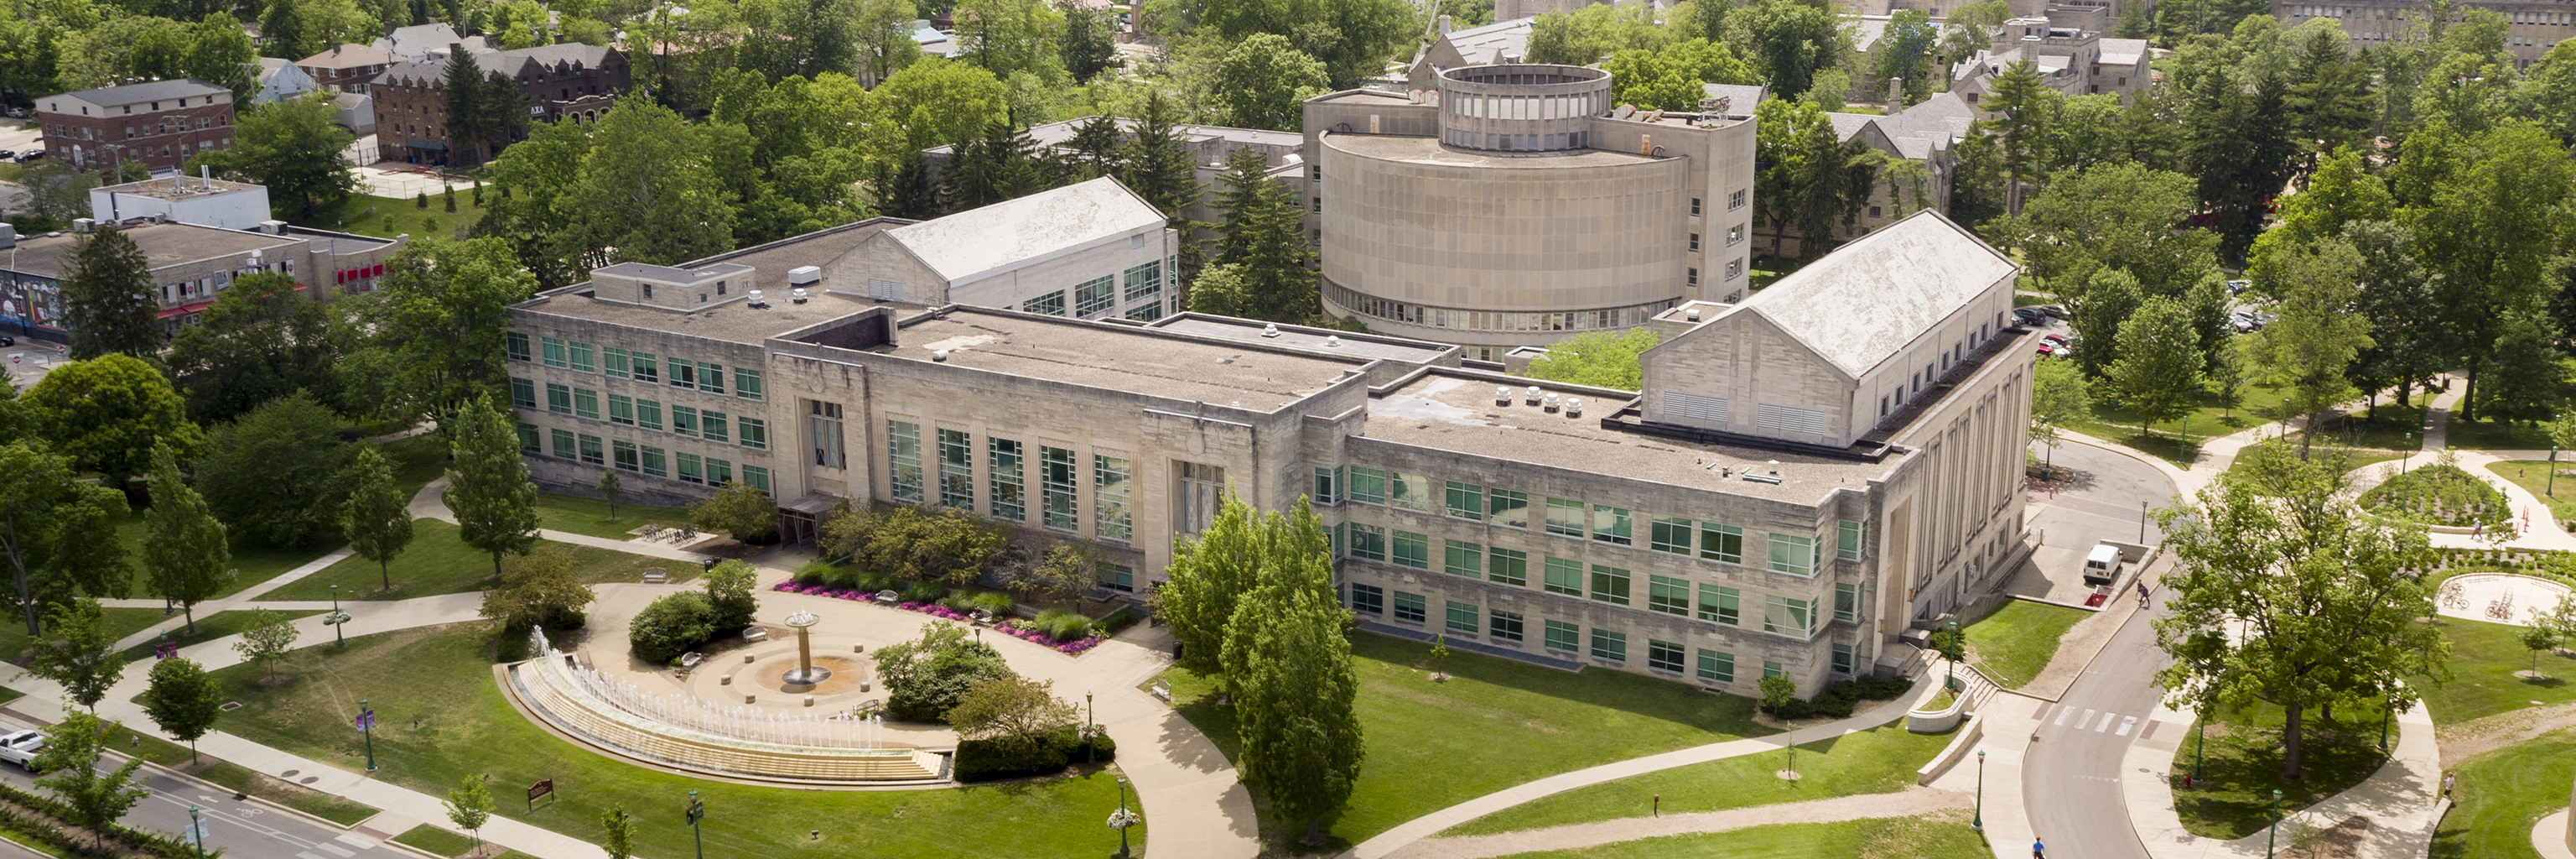 Aerial image of the Speech and Hearing Building on the Indiana University Bloomington campus.